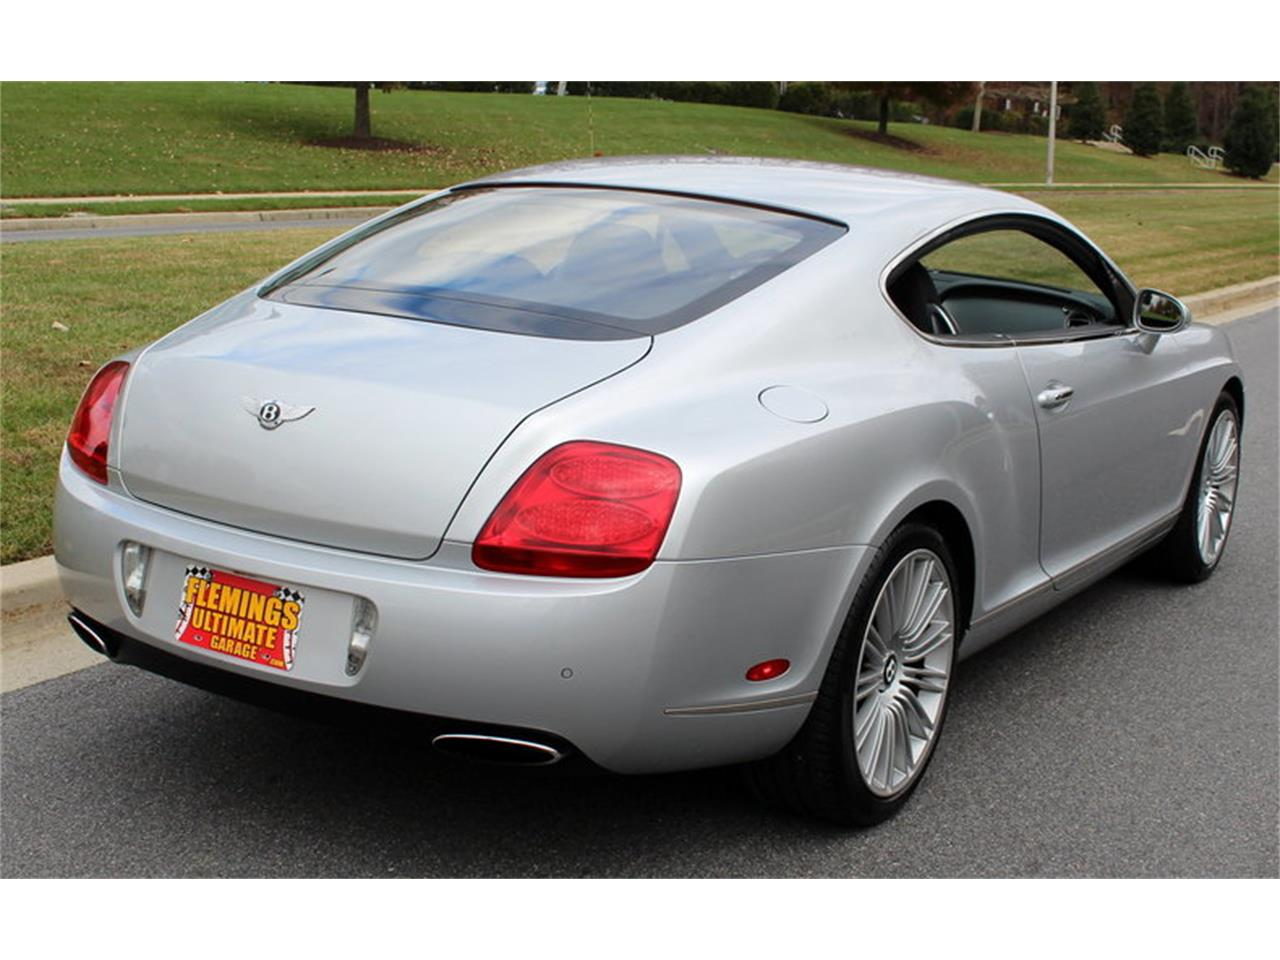 Large Picture of 2008 Bentley Continental located in Maryland - $69,990.00 - MDEM